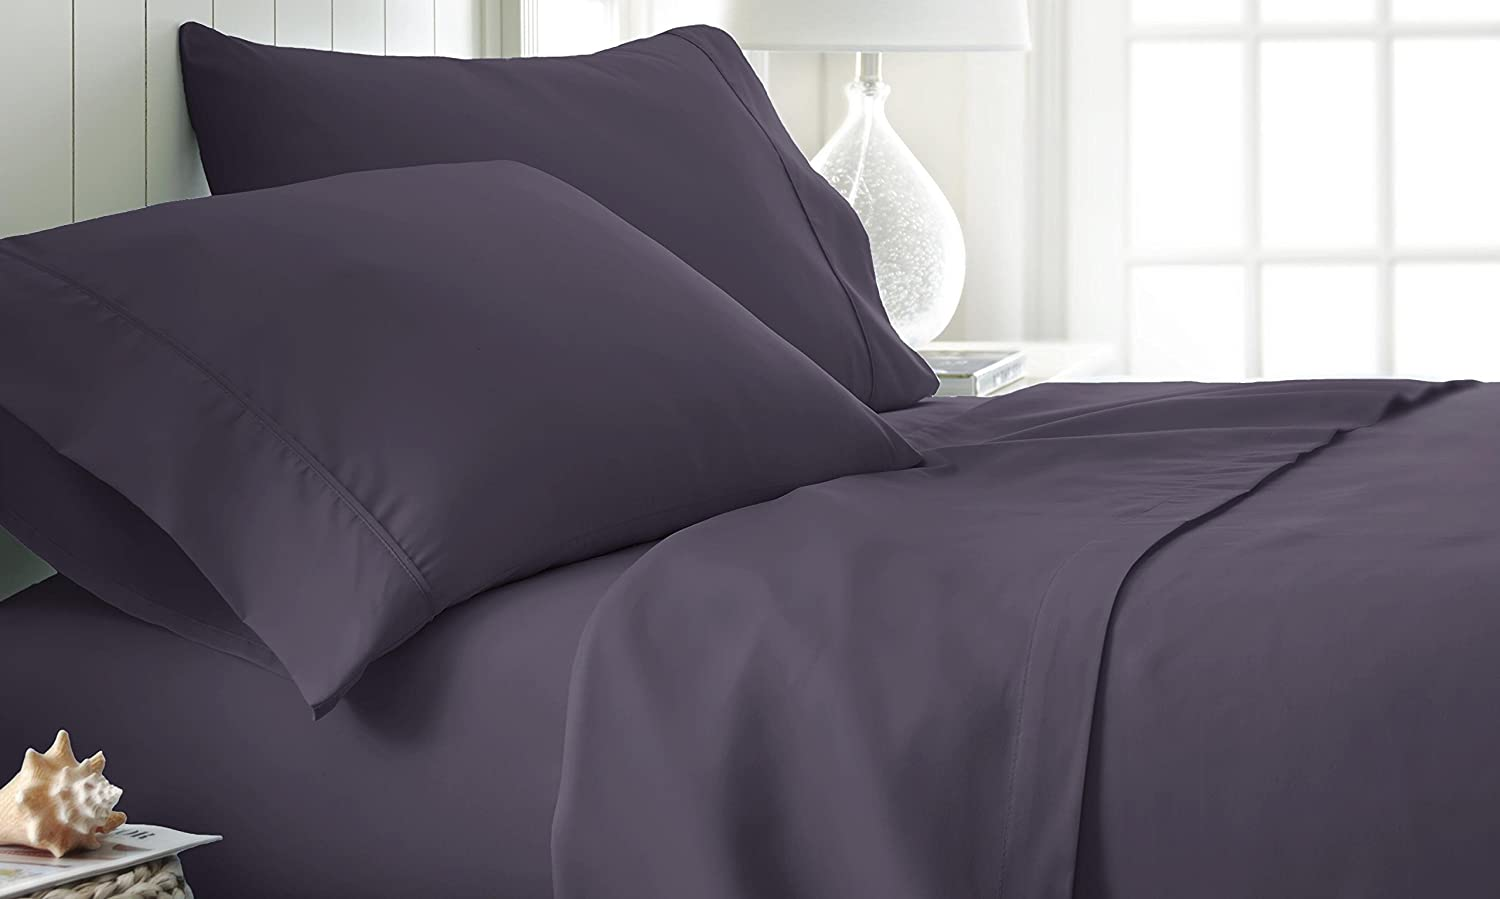 ienjoy Home Hotel Collection Luxury Soft Brushed Bed Sheet Set - Cal King - Purple